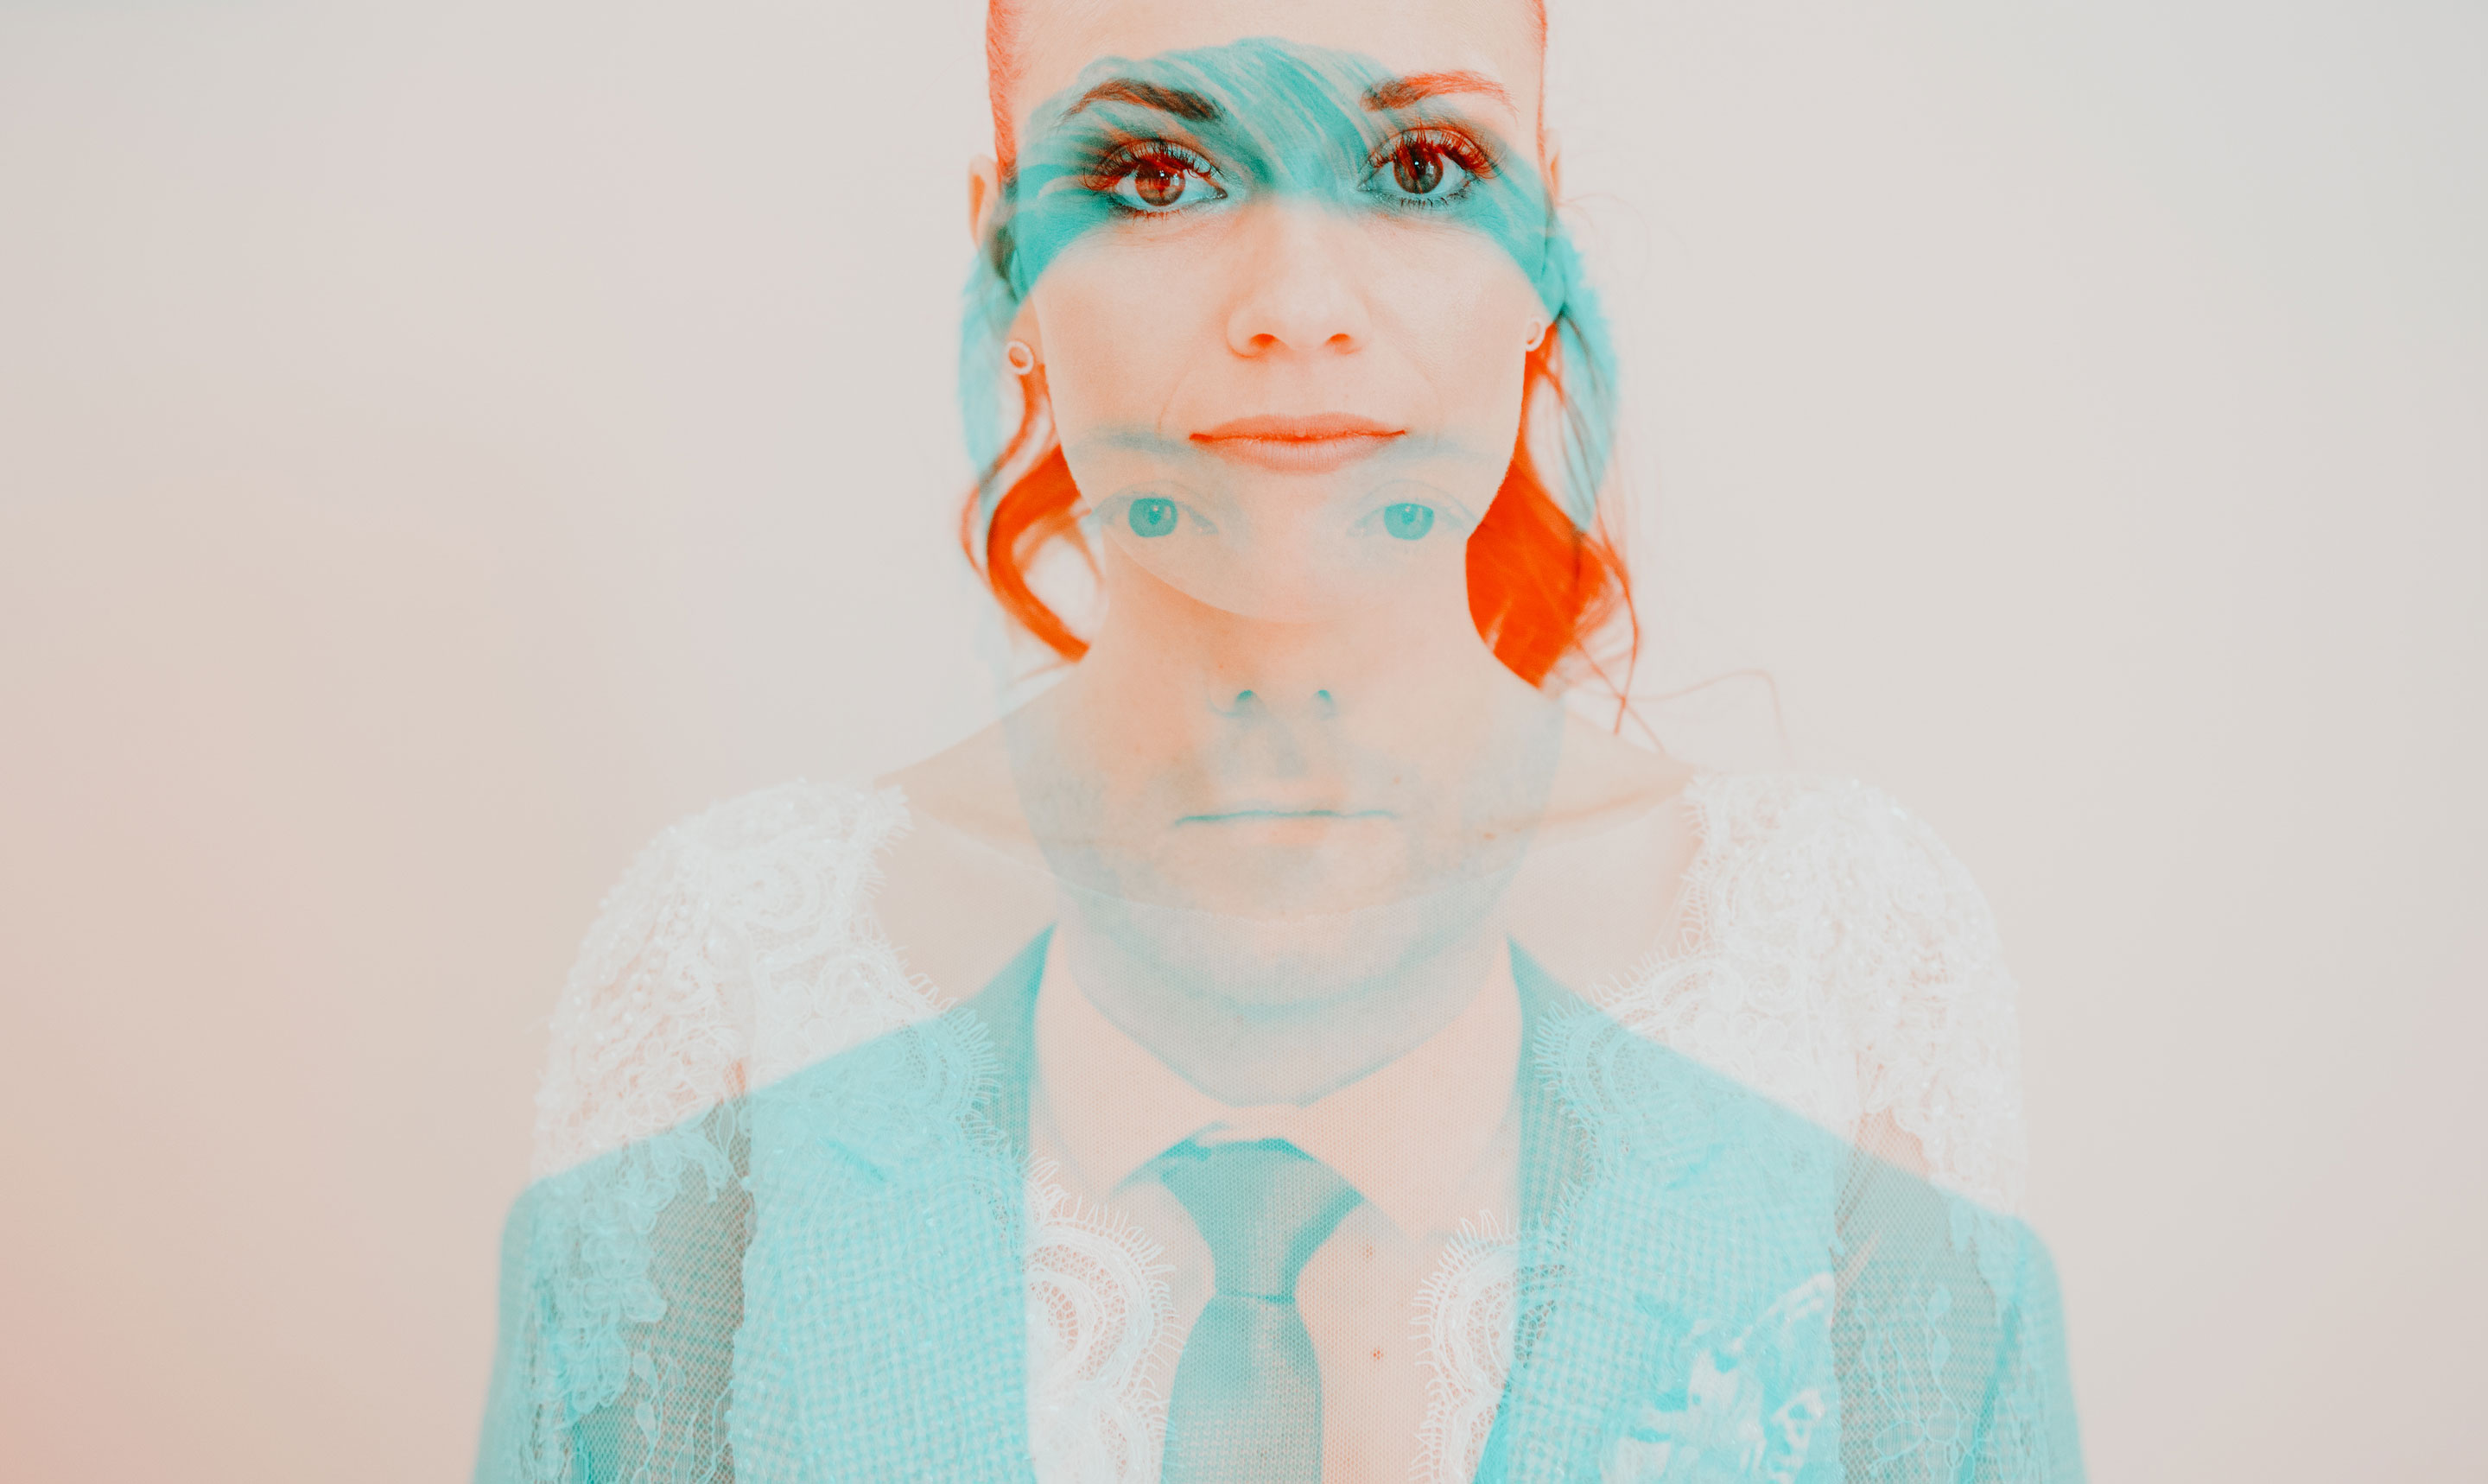 bride and groom in colour double exposure for pricing page